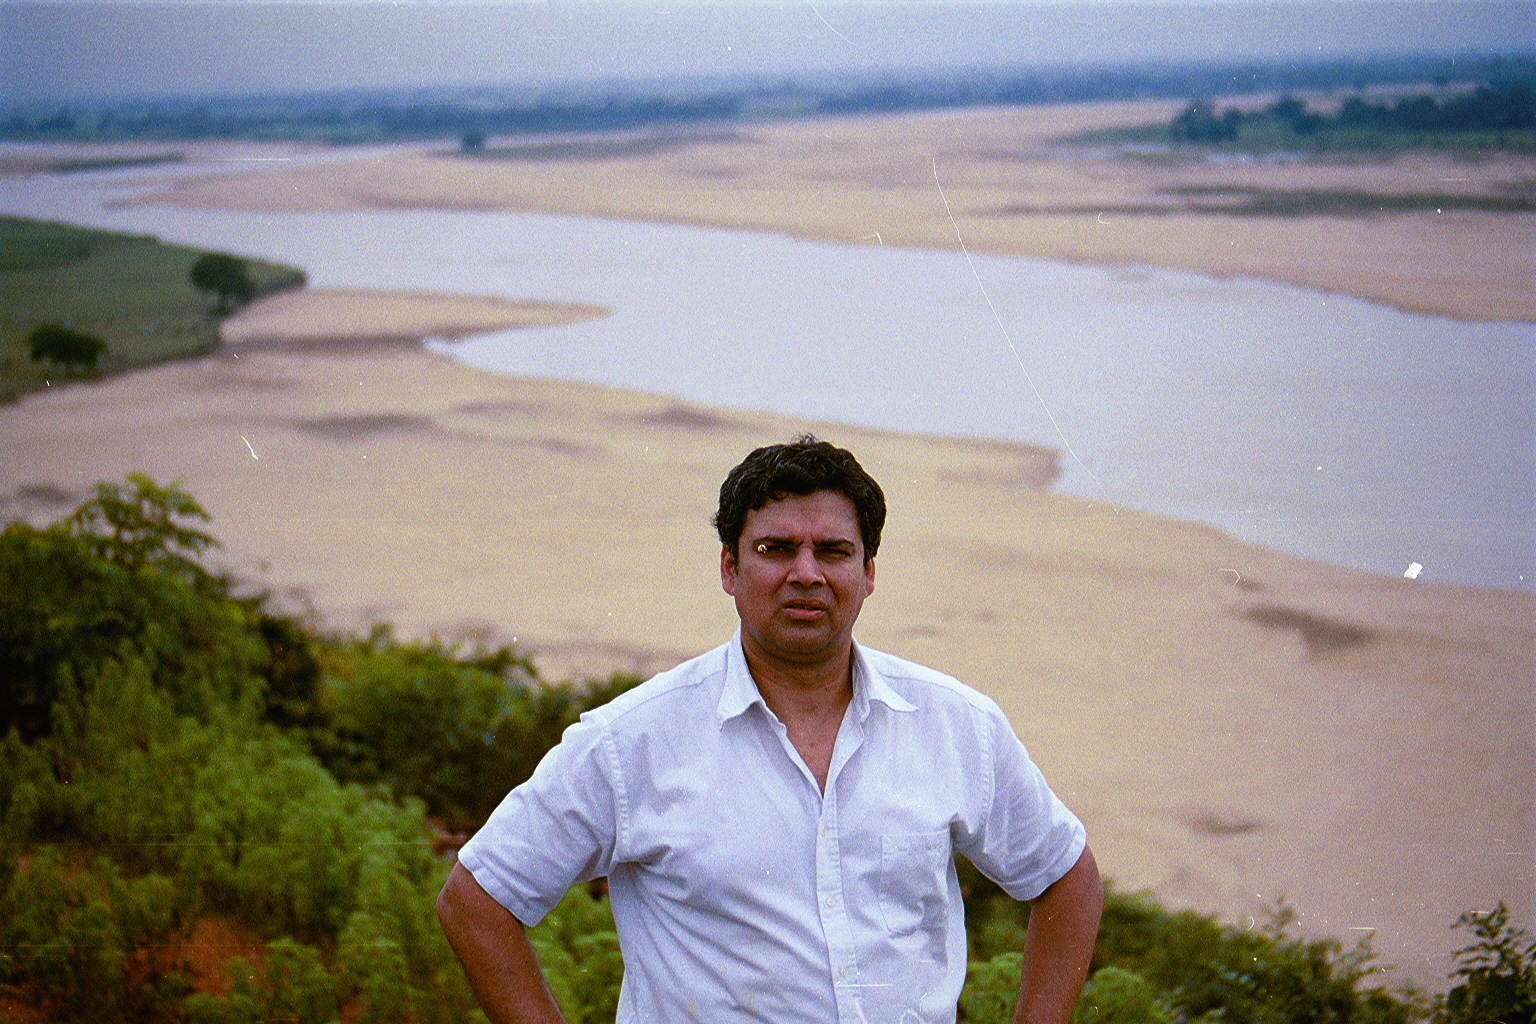 Myself standing on the slope of the hill; overlooking the banks of River 'Quil', Mallehpur, Monghyr, North Bihar